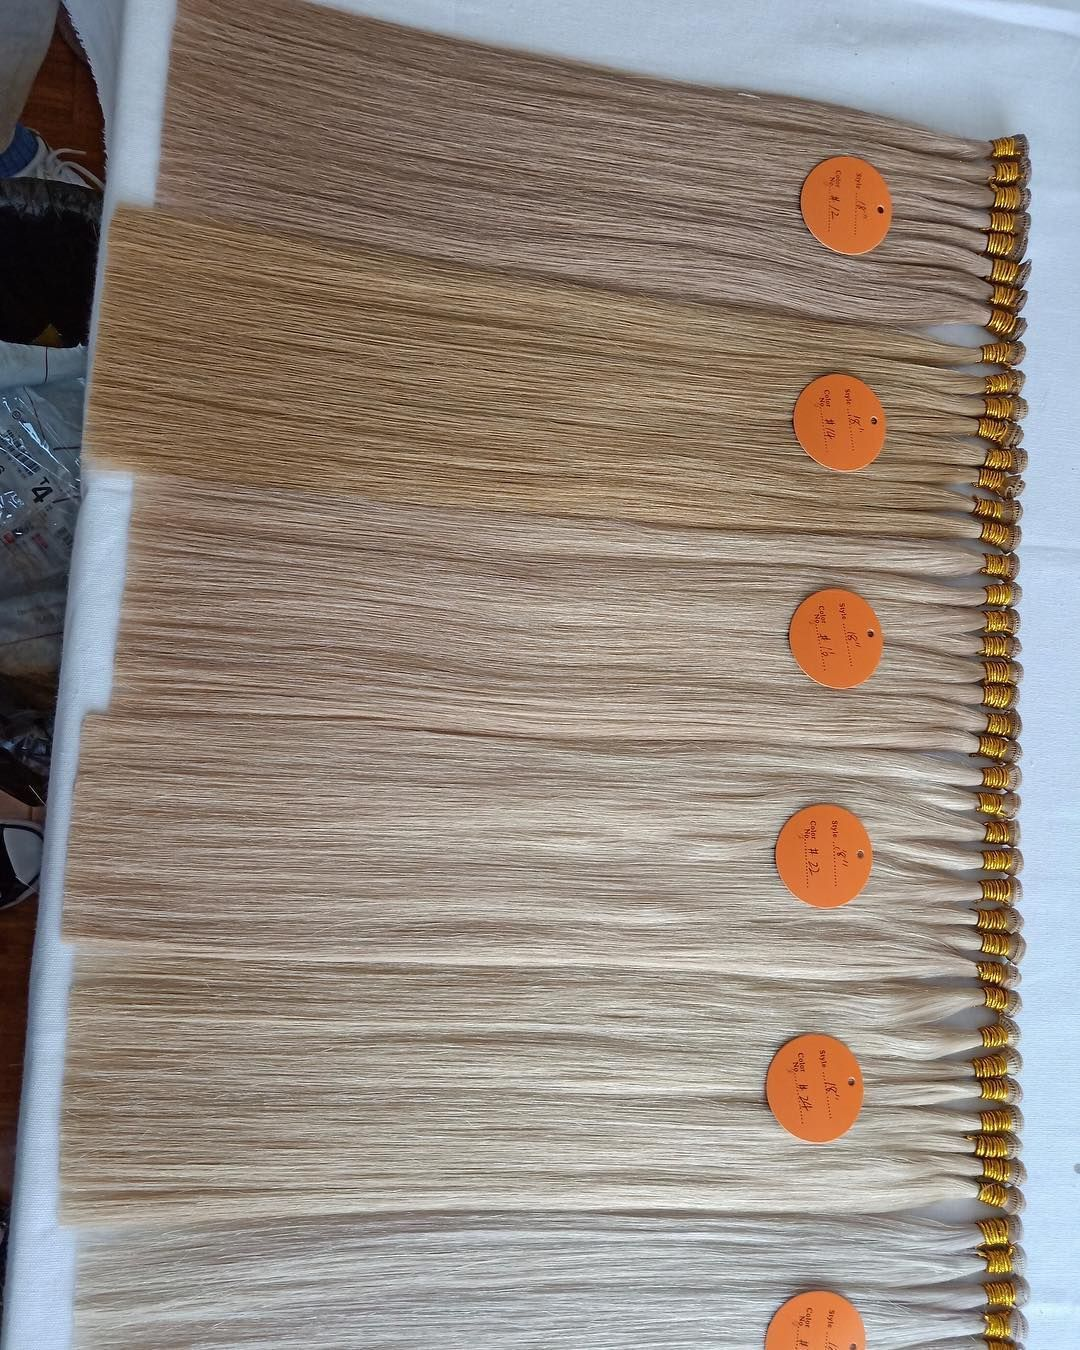 100% human hair extensions from china hair factory with wholesale price fall mak...,  #china #Extensions #Factory #Fall #hair #hairlengthchart #Human #mak #PRICE #Wholesale